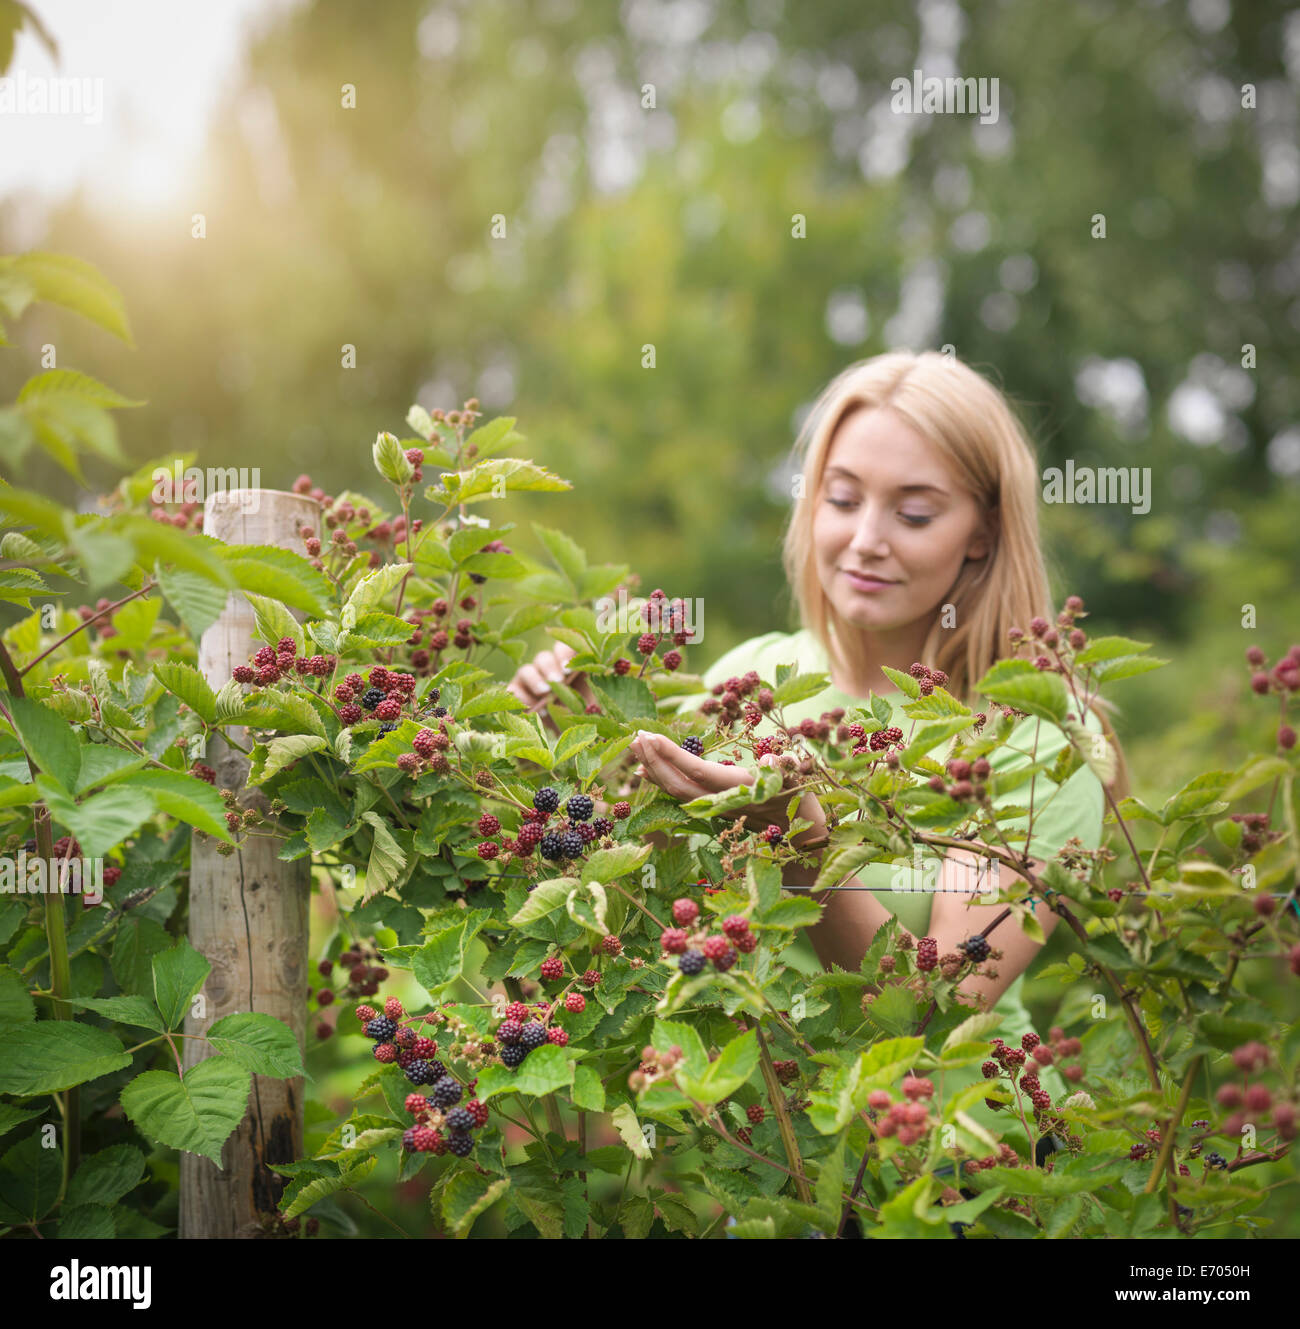 Working picking blackberries on fruit farm - Stock Image